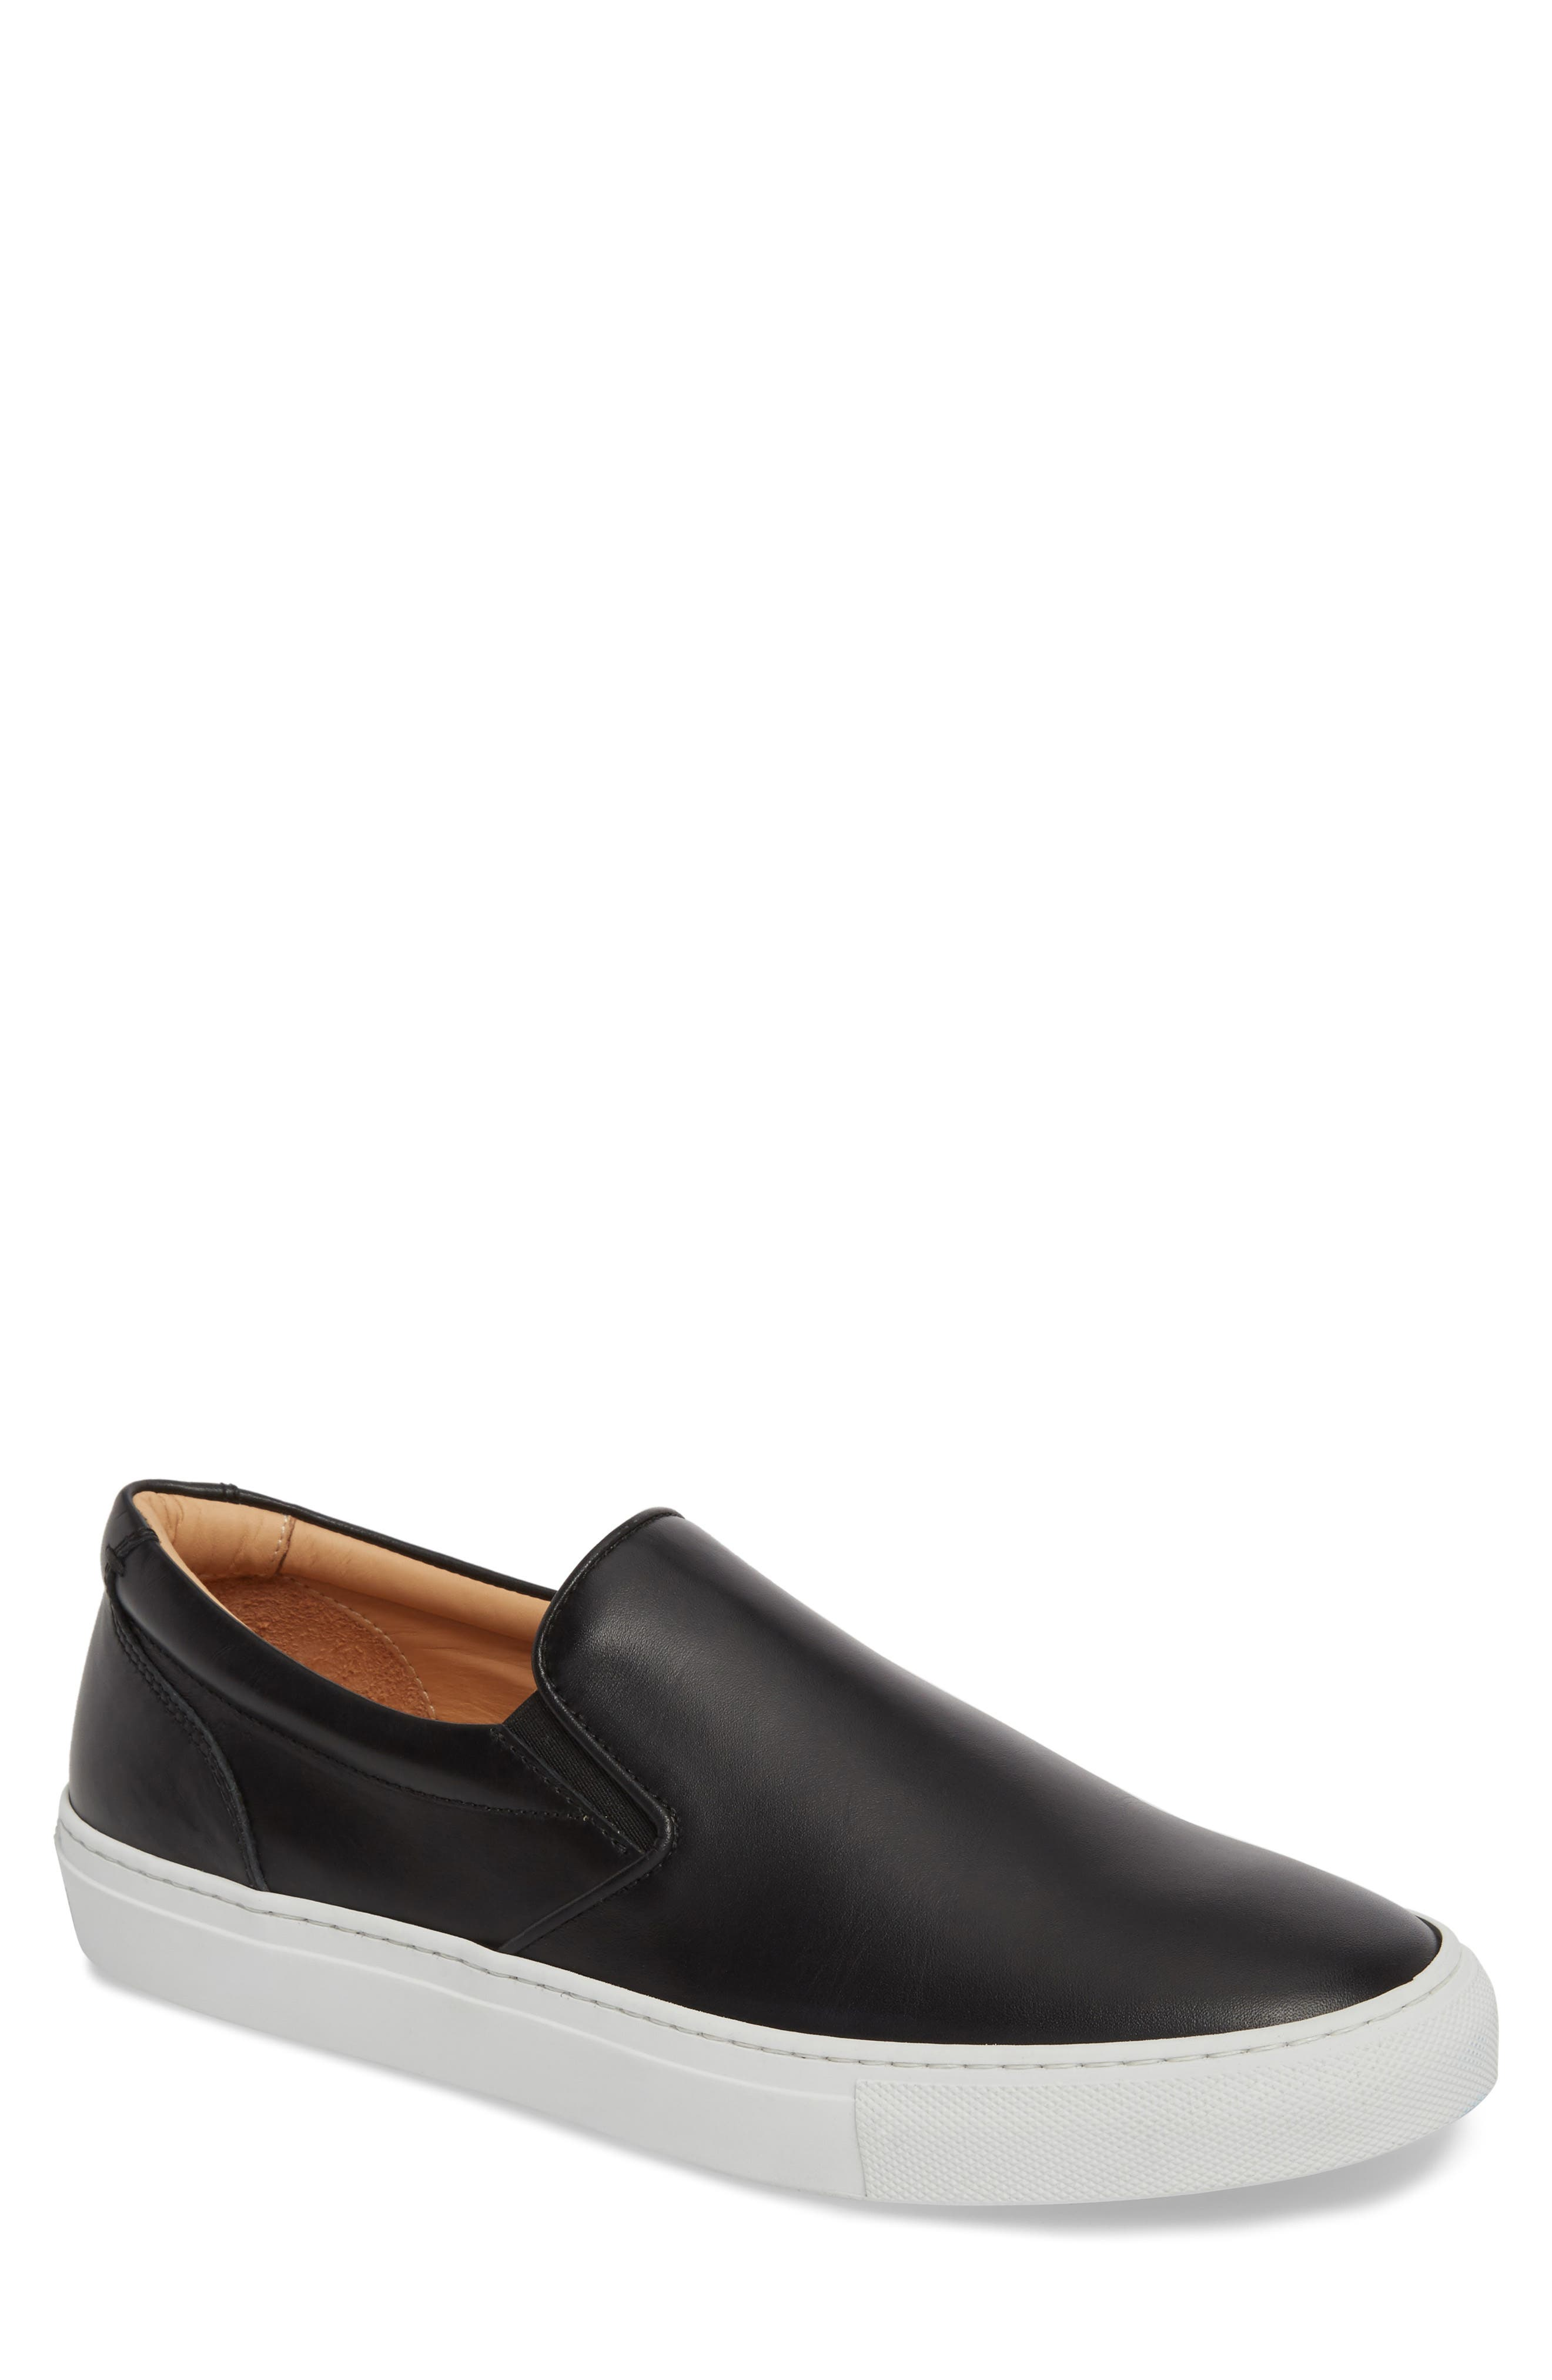 Wooster Slip-On Sneaker,                             Main thumbnail 1, color,                             Black Leather